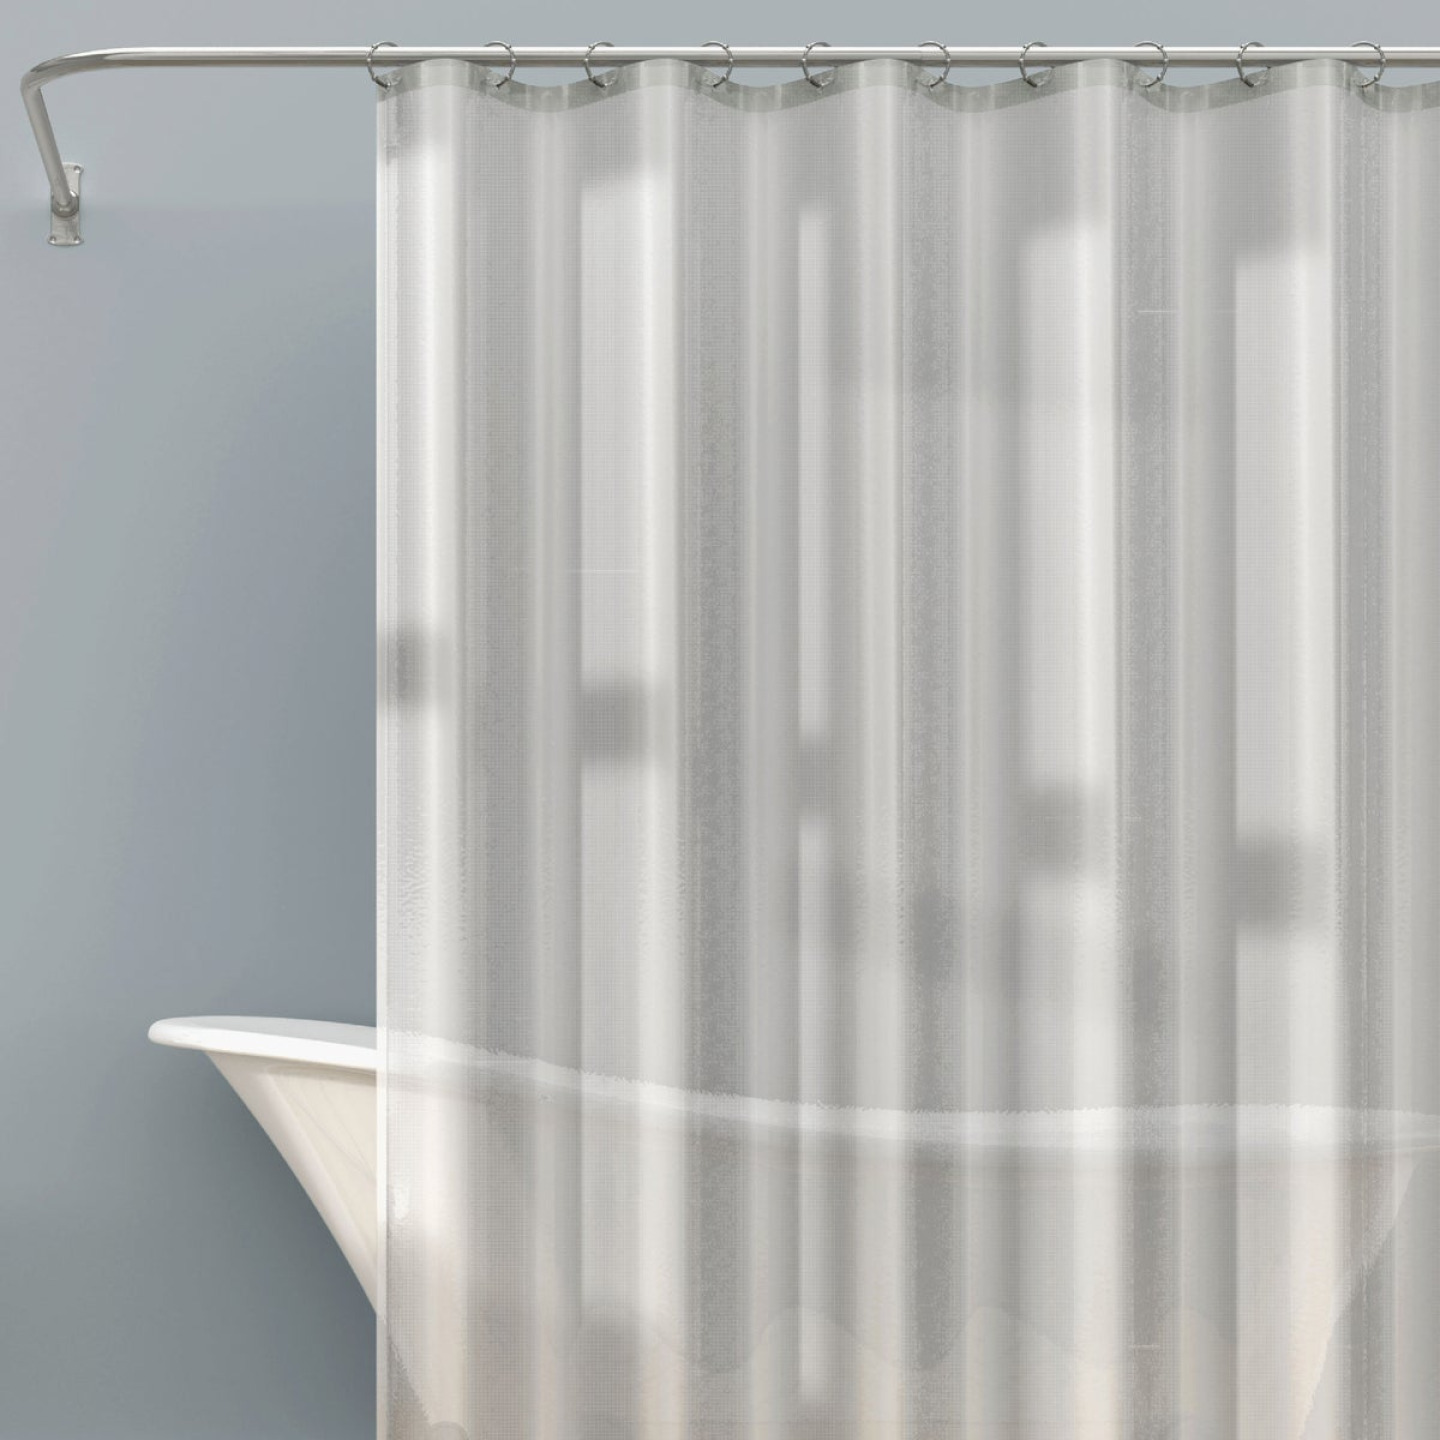 Zenna Home 70 In. x 71 In. Frosty Heavyweight PEVA Shower Curtain Liner Image 1